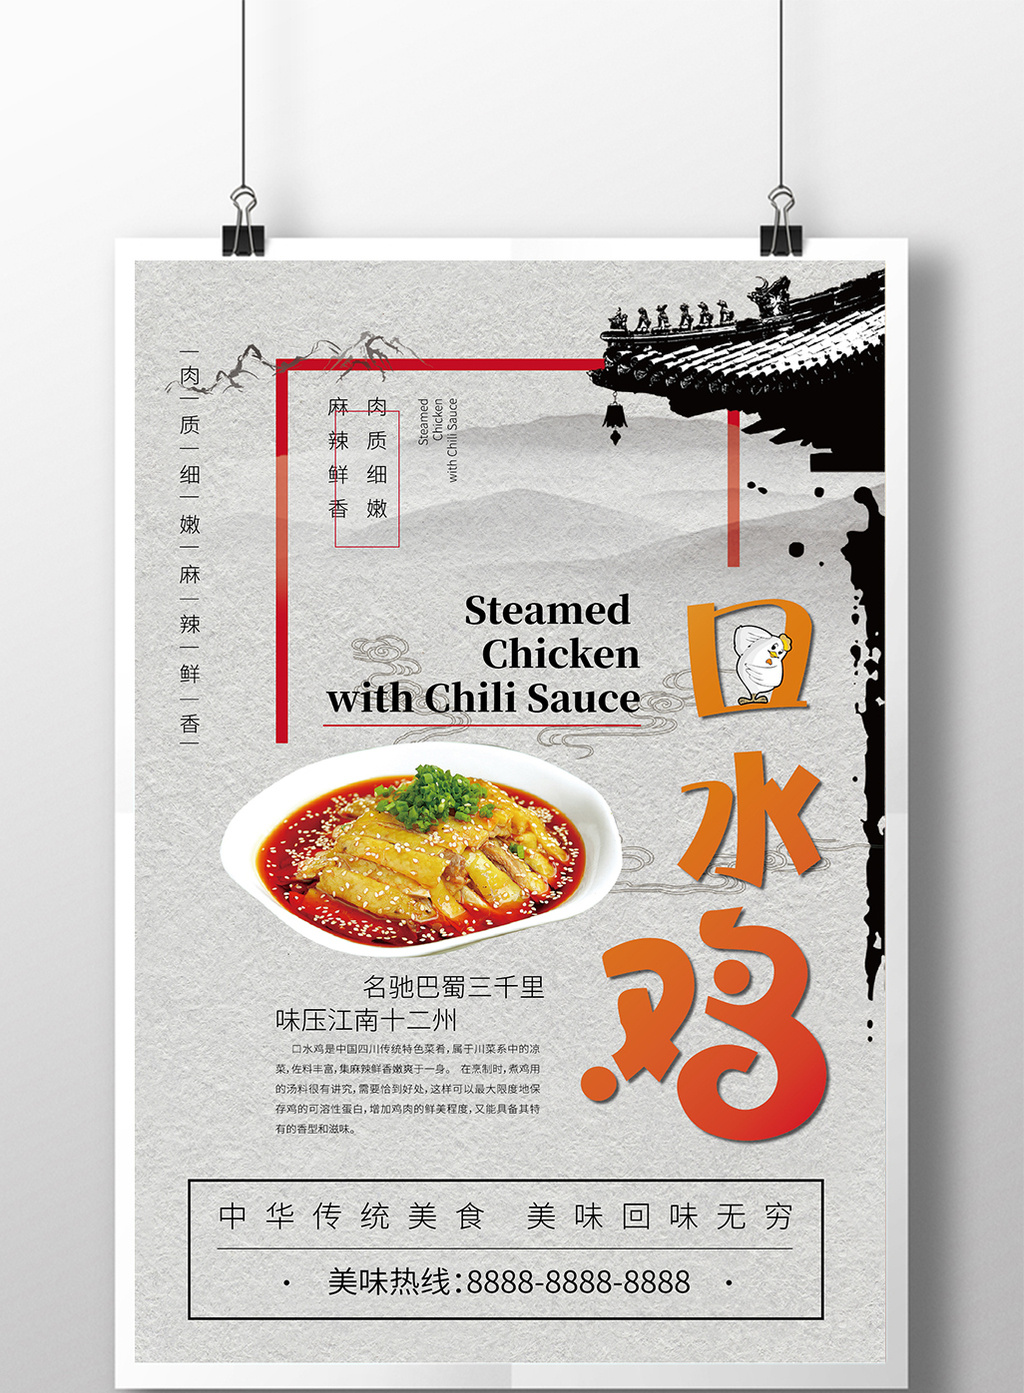 Poster Cuisine Saliva Chicken Food Promotion Poster Template Ai Free Download